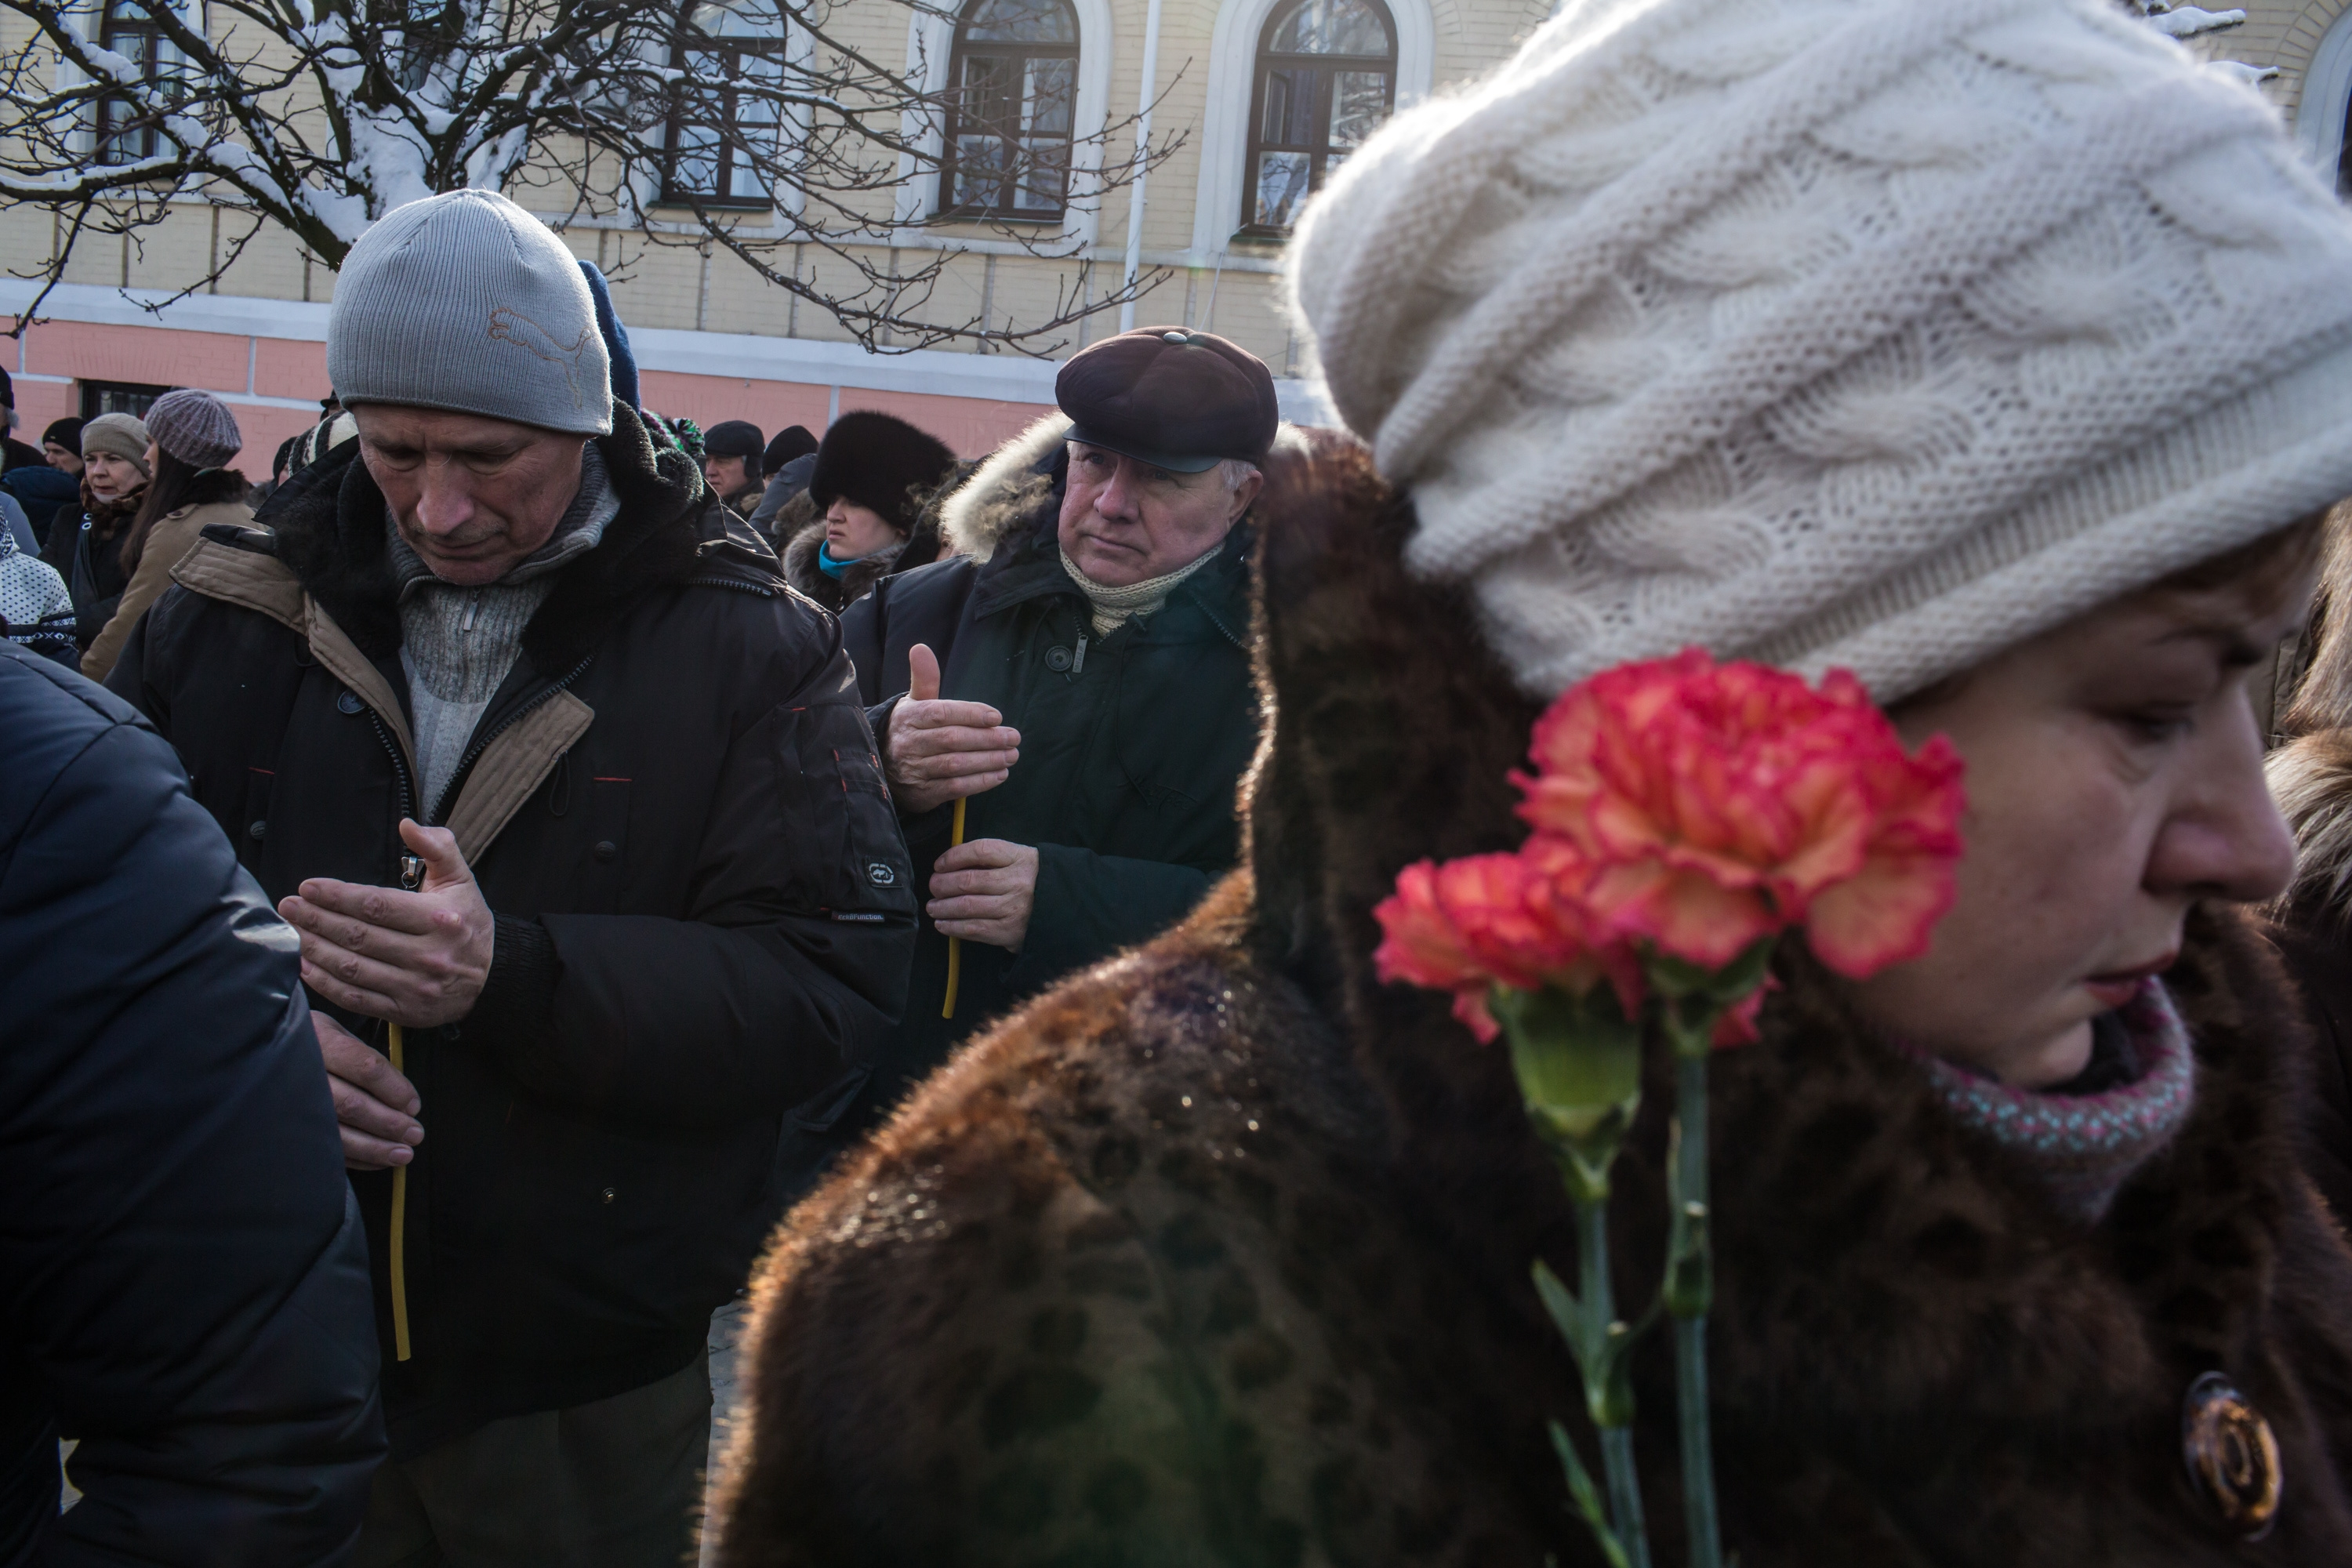 People gather outside Mikhailovsky Cathedral during a service for an anti-government protester who was killed in clashes with police in Kiev, Ukraine, where laws meant to end protests have sparked violent clashes.